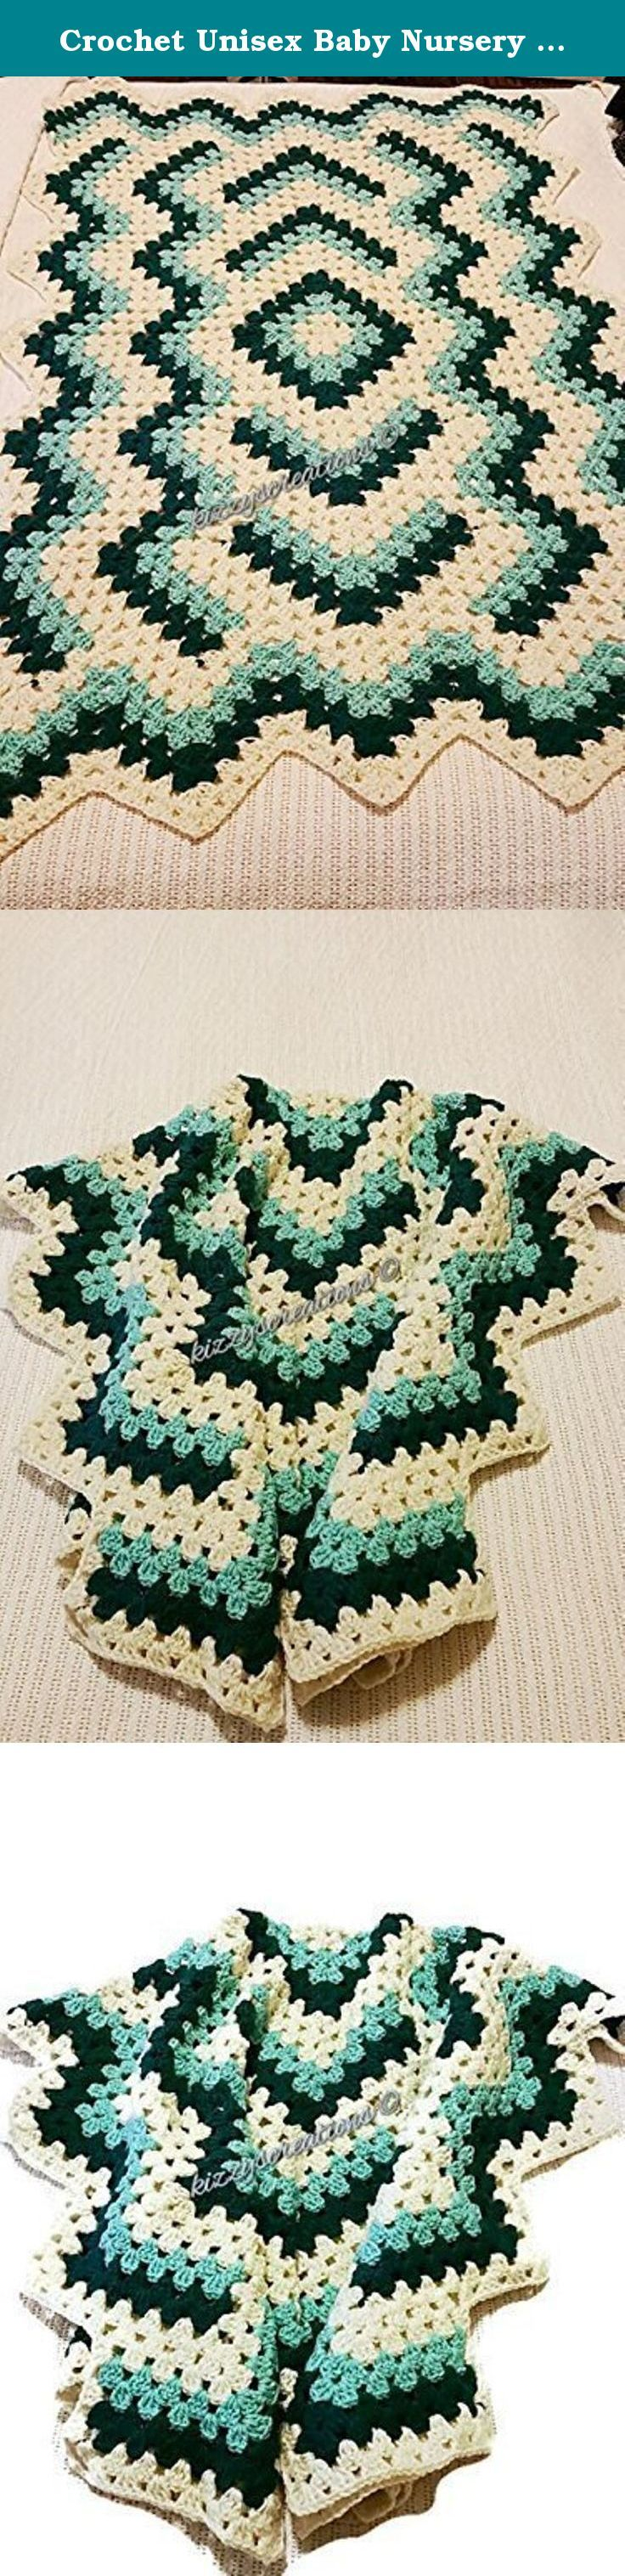 Crochet Unisex Baby Nursery Blanket. This beautiful blanket can be used by a girl or boy. It is made with soft yarn in Cream, Aqua and Teal. The design is meant to give the appearance of water ripples in a pond. This be a lovely accent to any child's nursery. It will keep them snuggled and warm all winter long!.